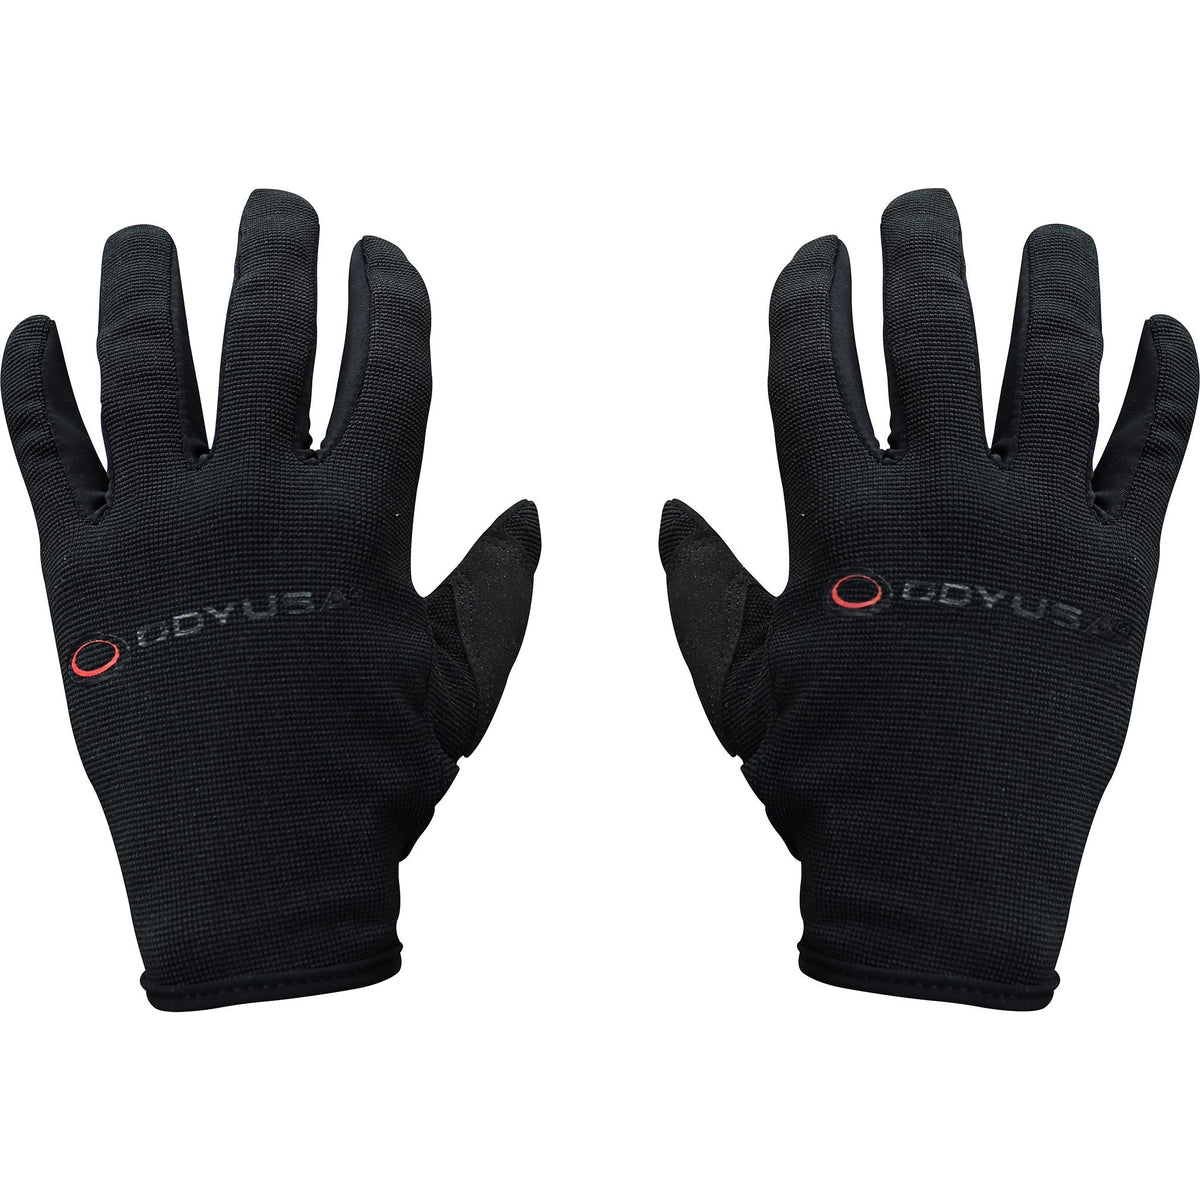 Odyssey SKODYG Stage Krew Gig Gloves, Medium